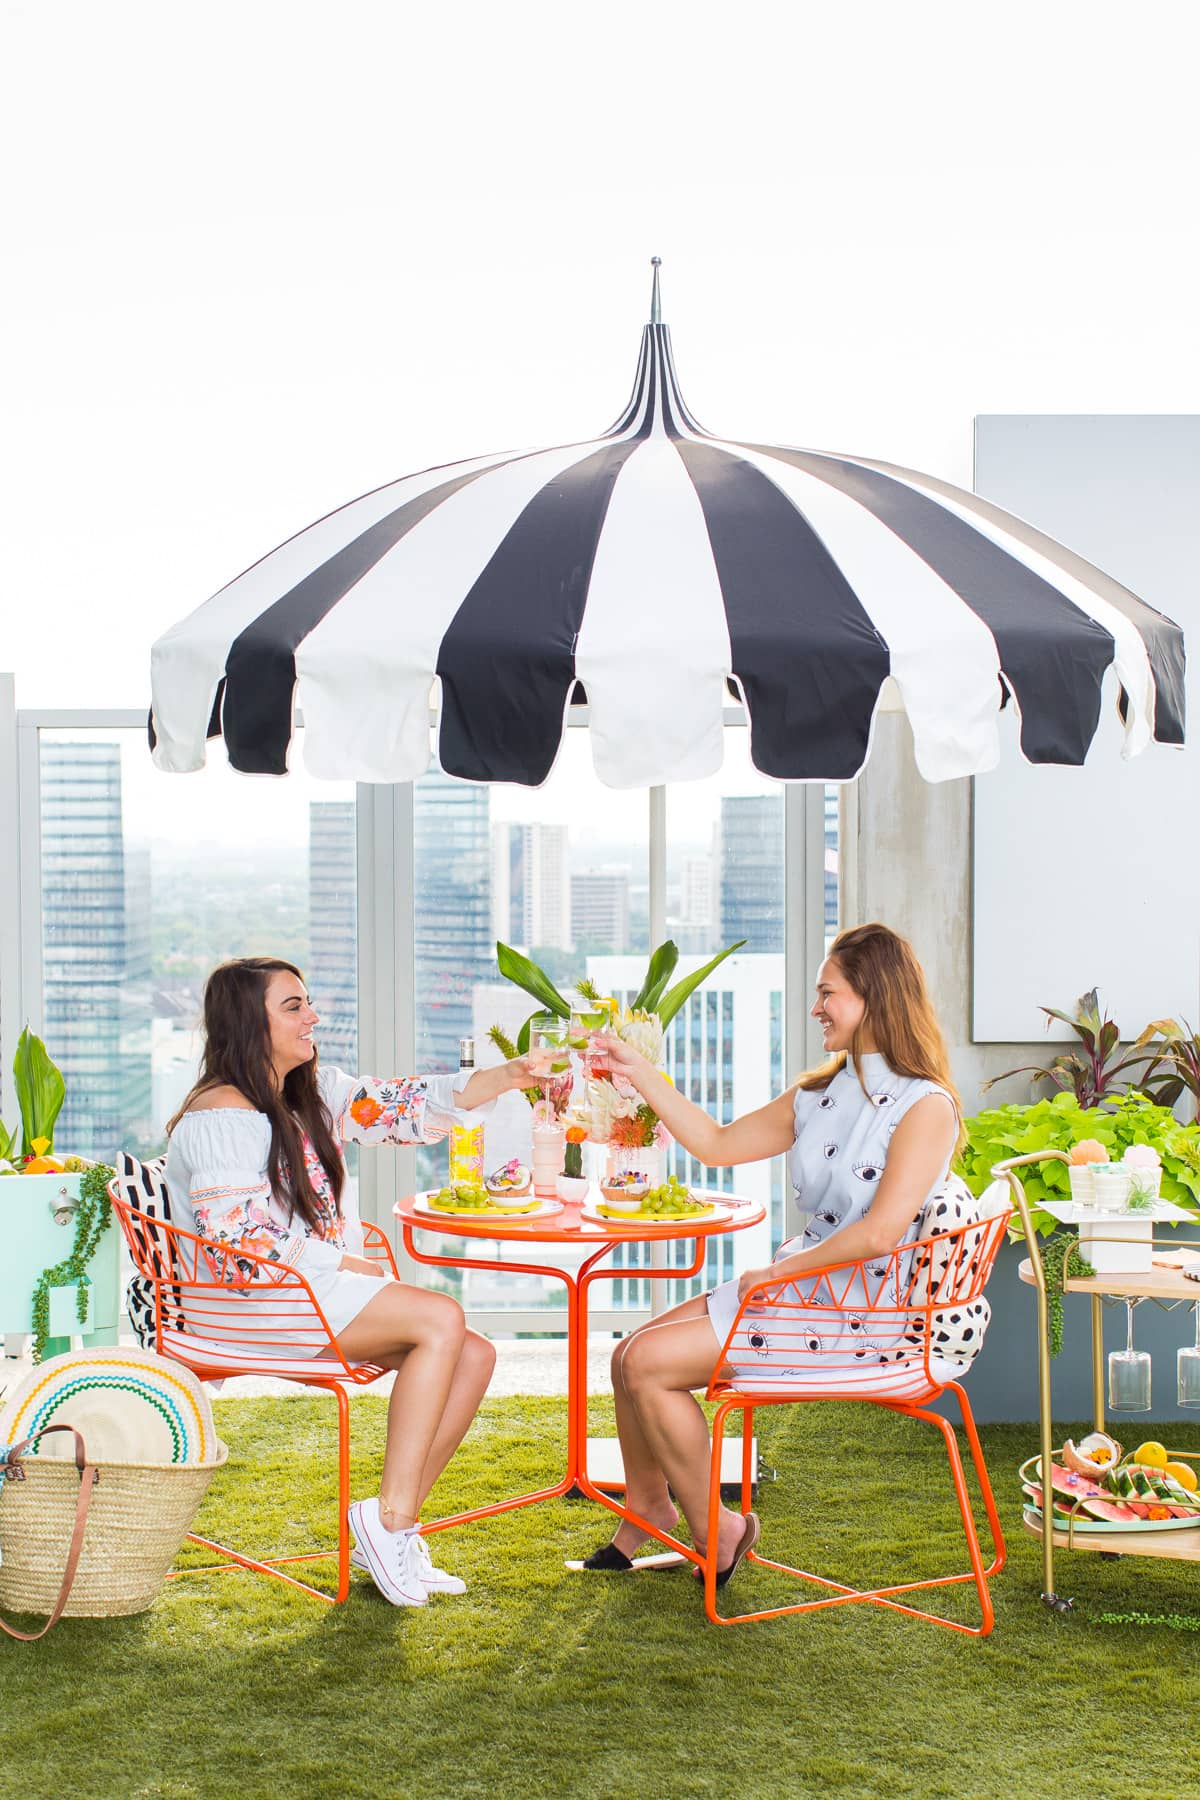 Poolside Summer Entertaining Al Fresco (+ Giveaway!) by top Houston lifestyle blogger Ashley Rose of Sugar & Cloth